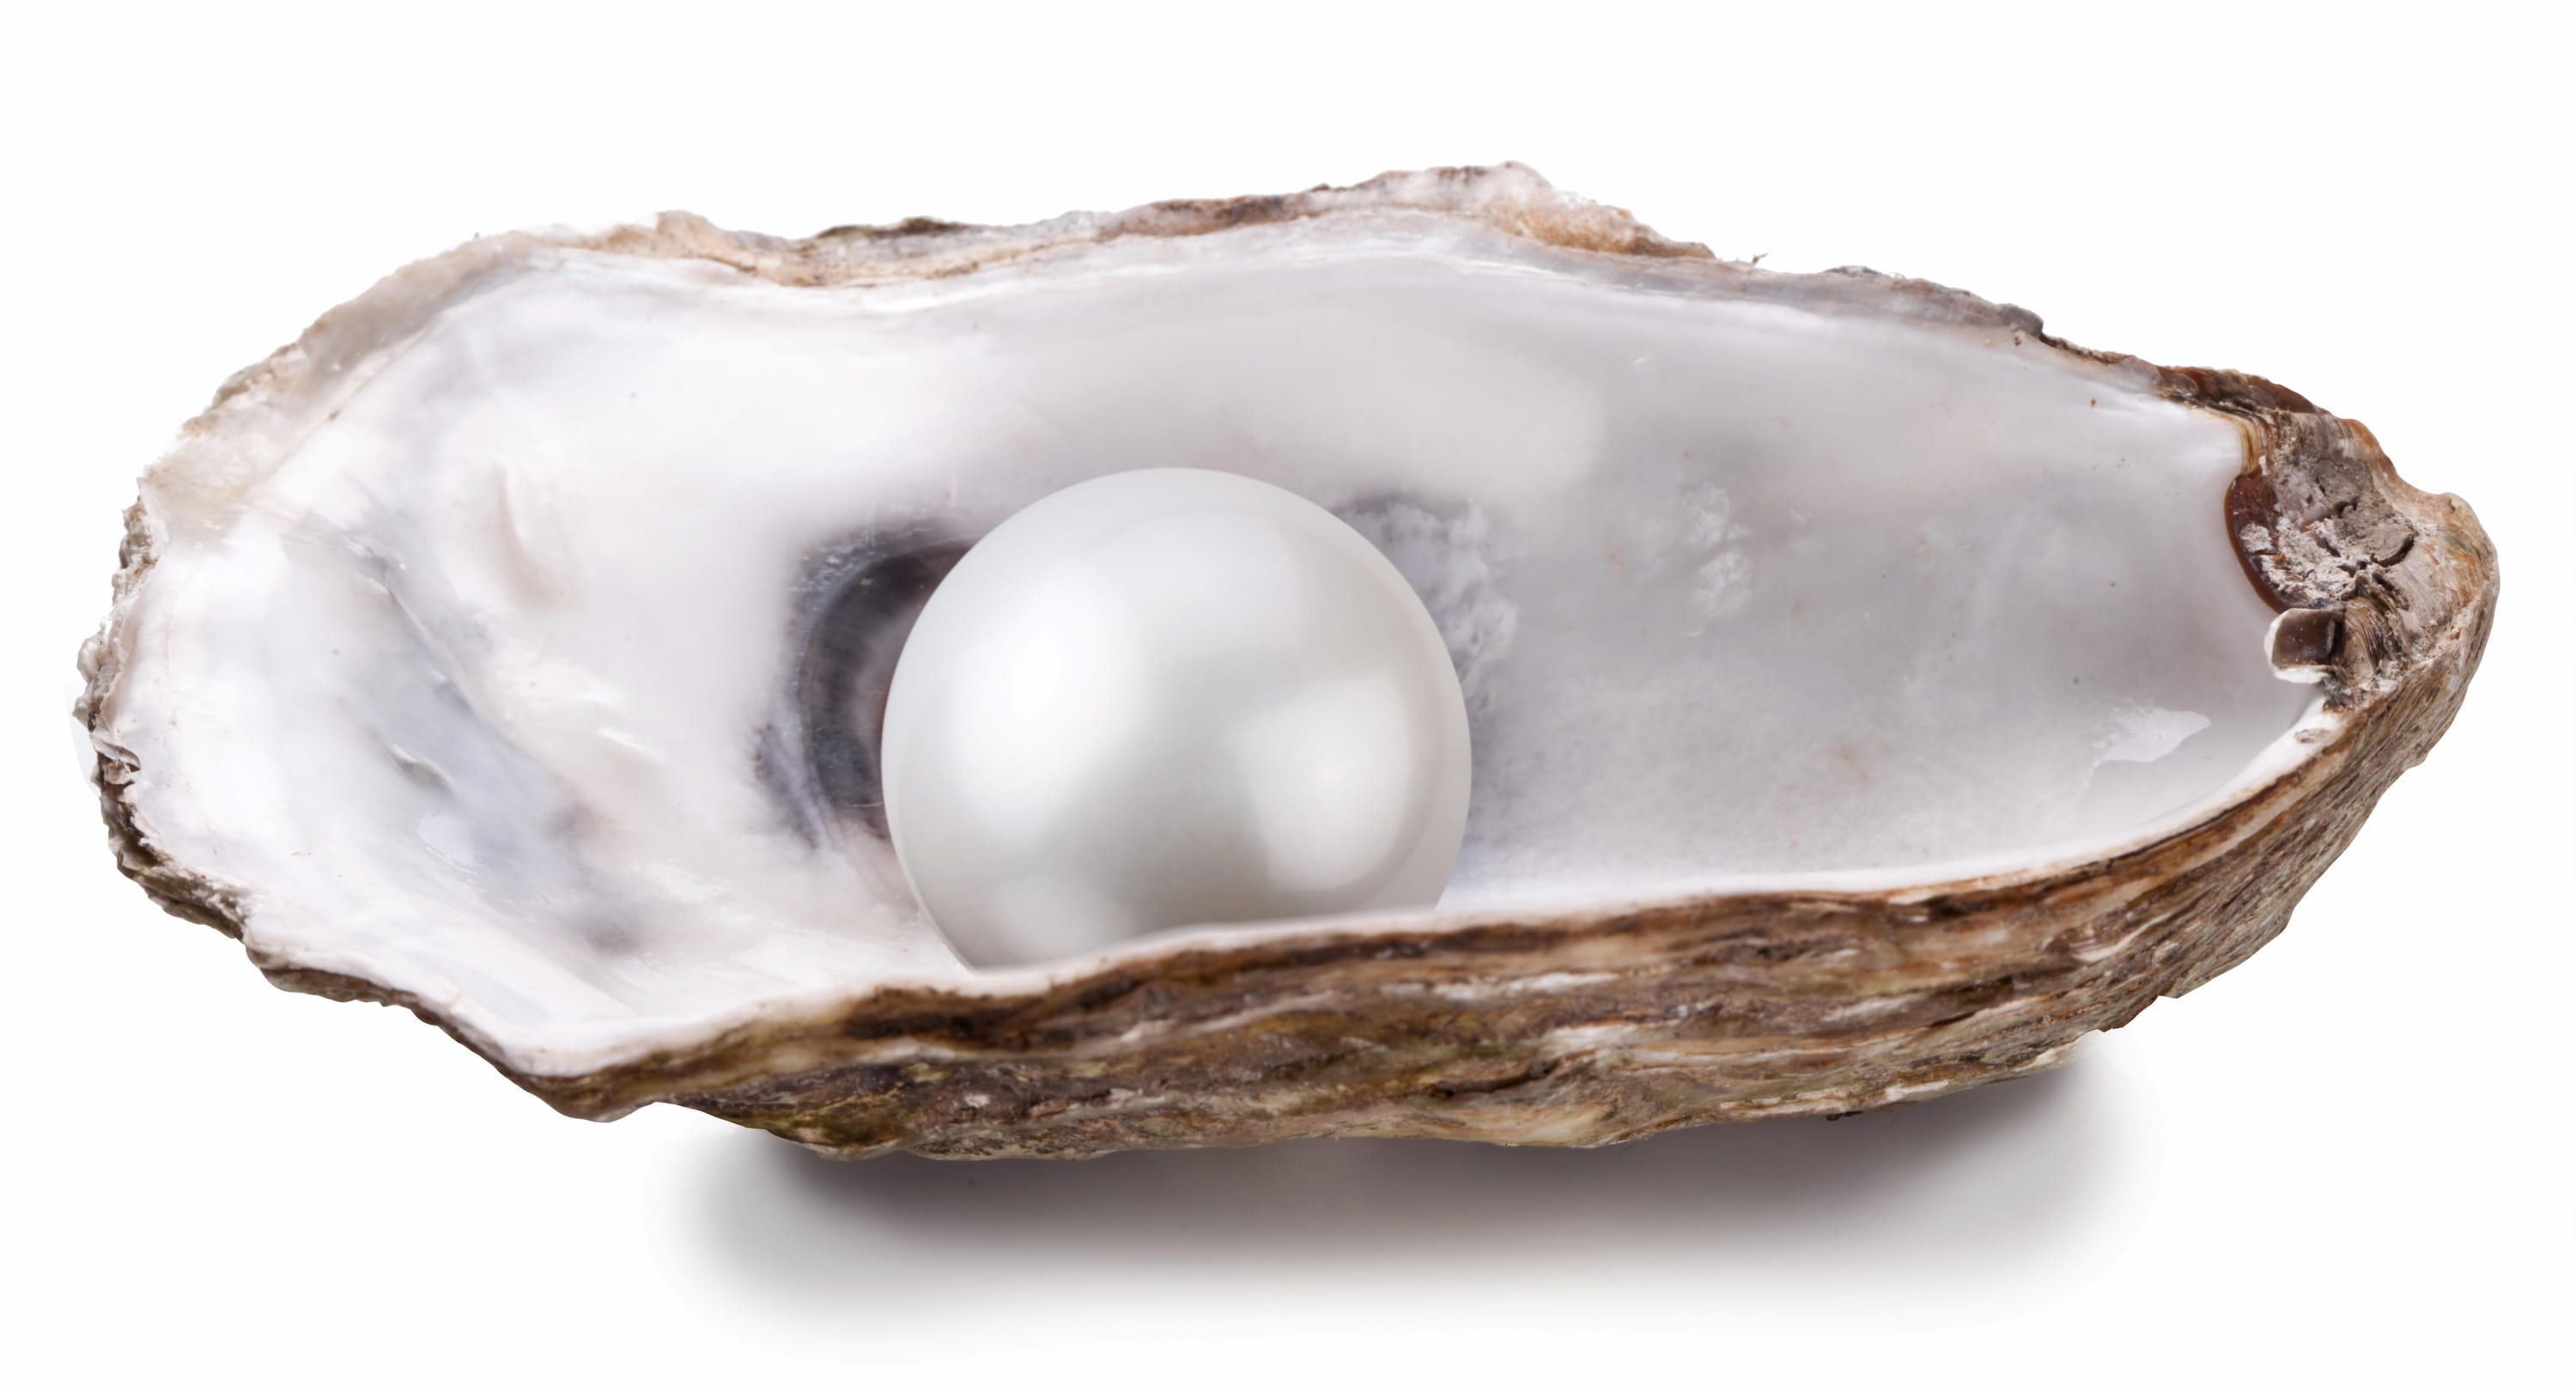 Oyster with isolated white pearl